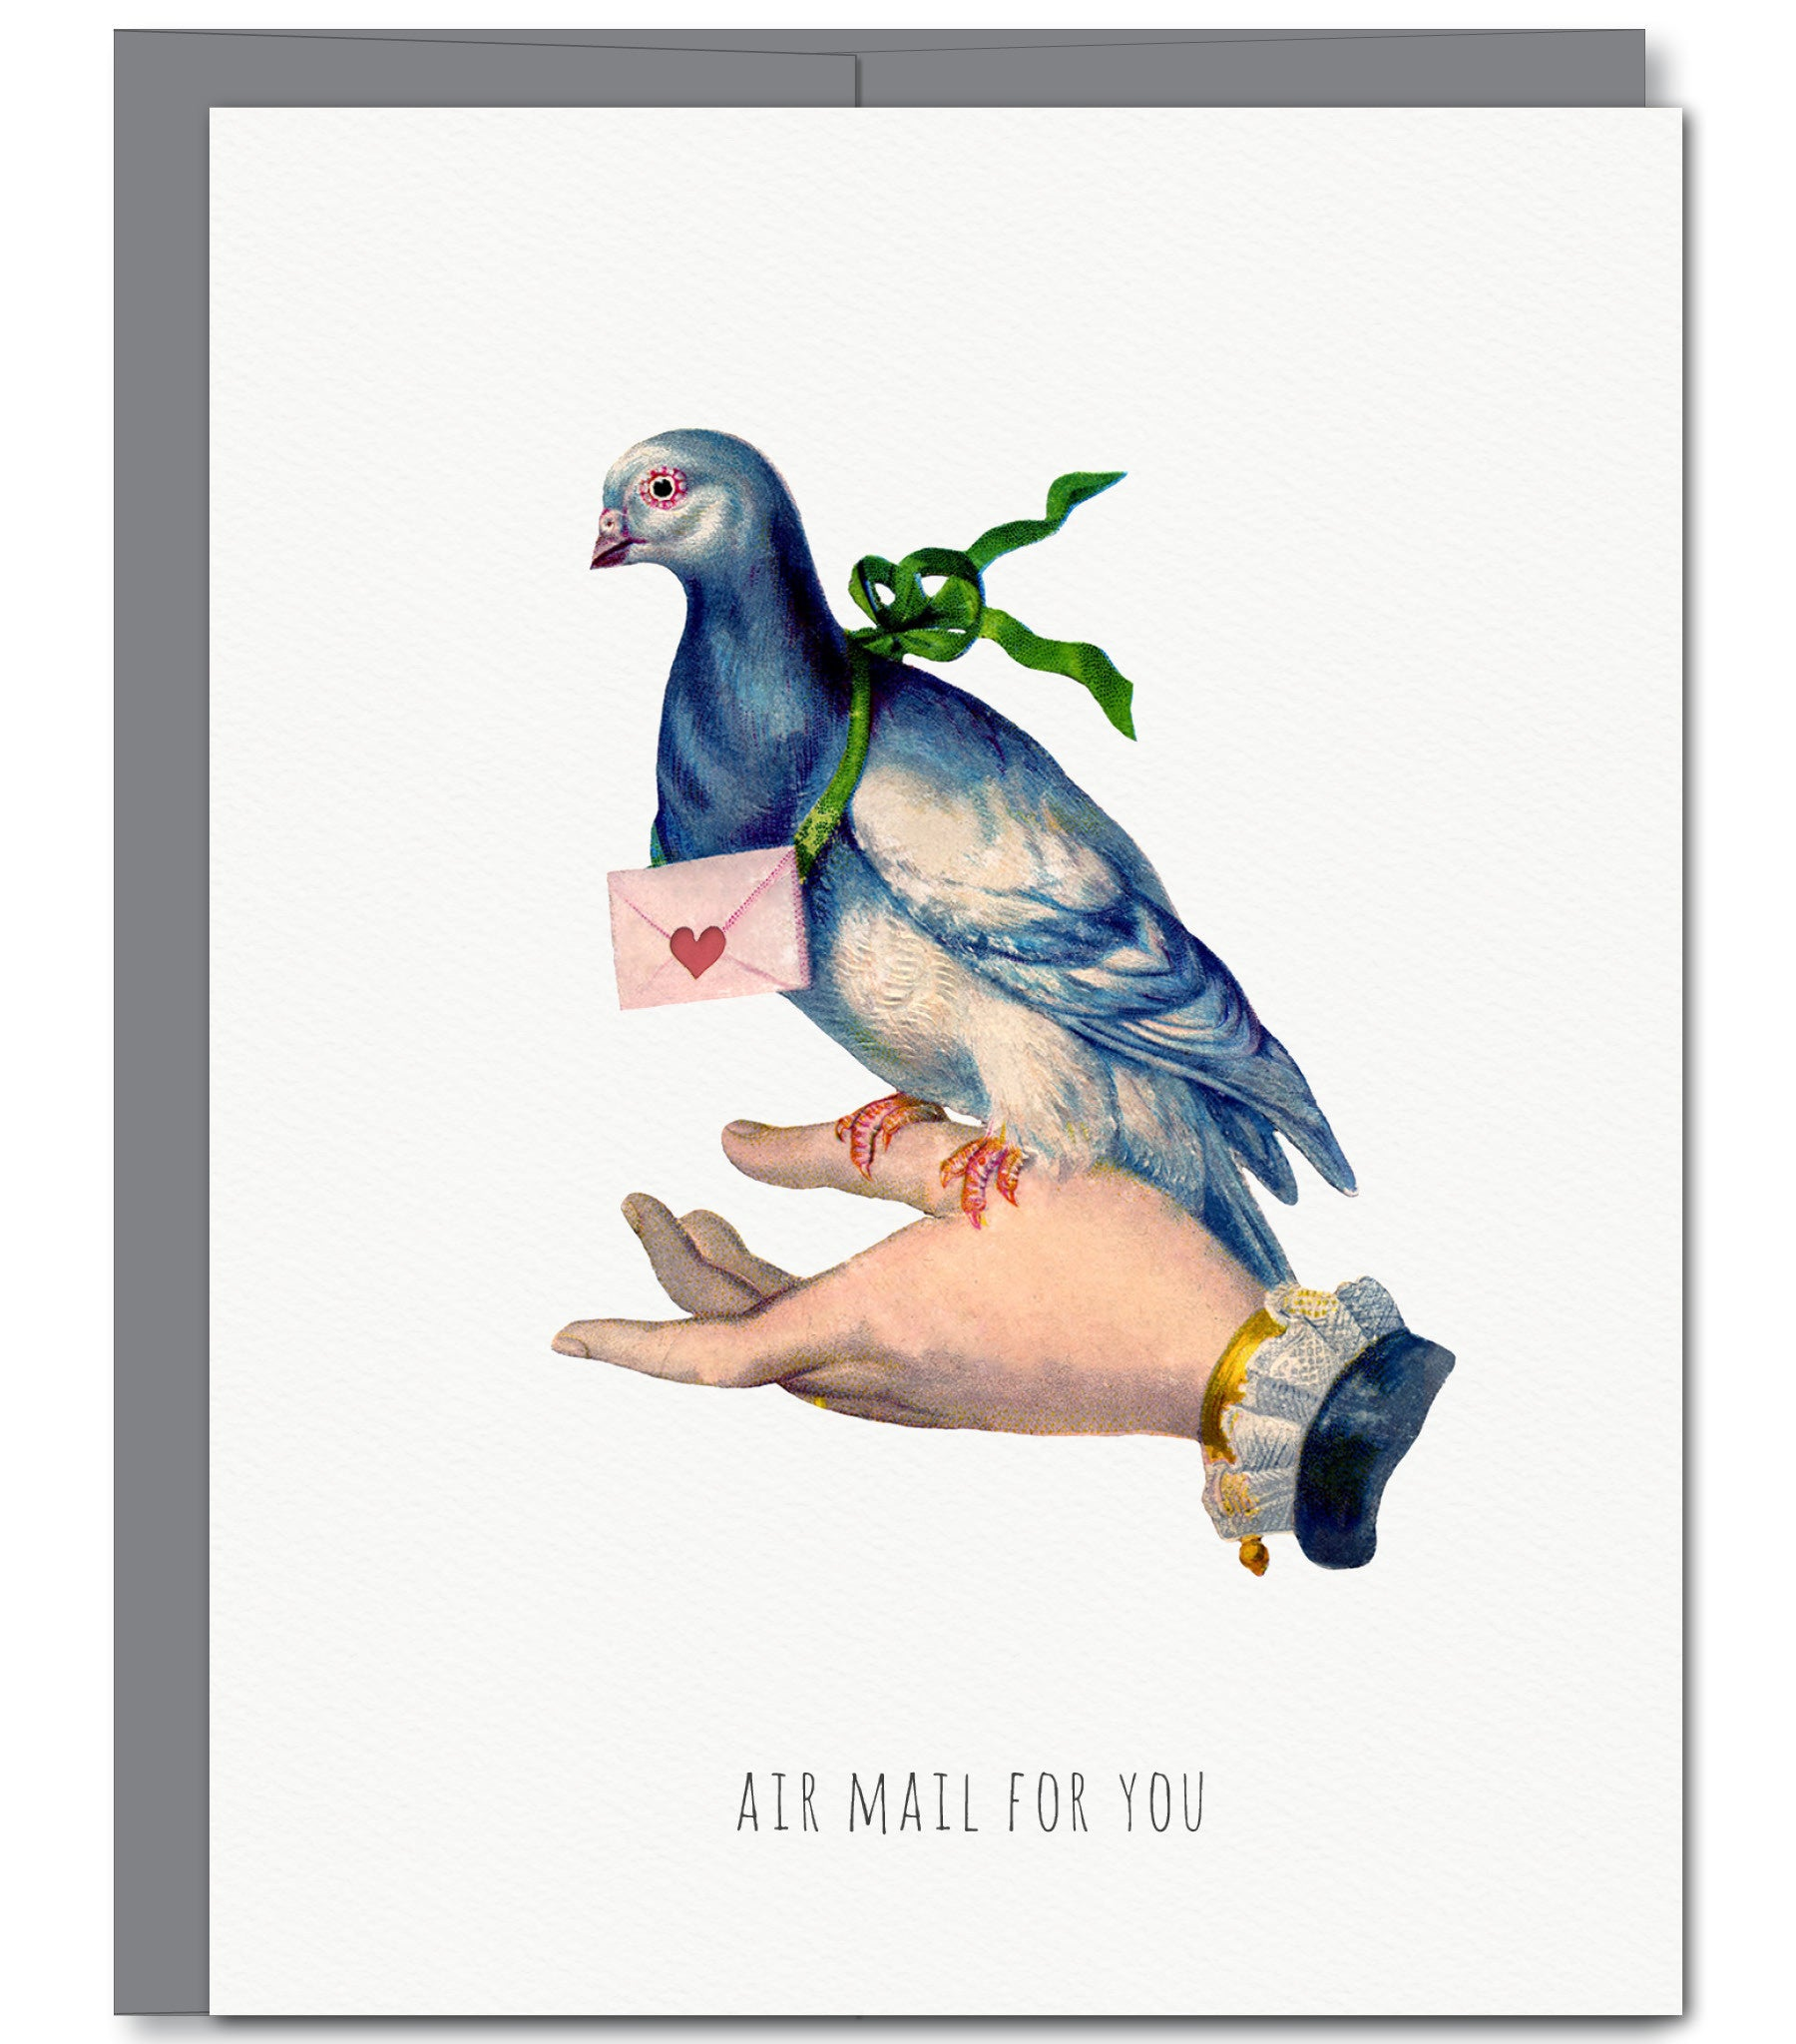 Air Mail Pigeon Everyday Glitter Greeting Card Sylvan Gate Design